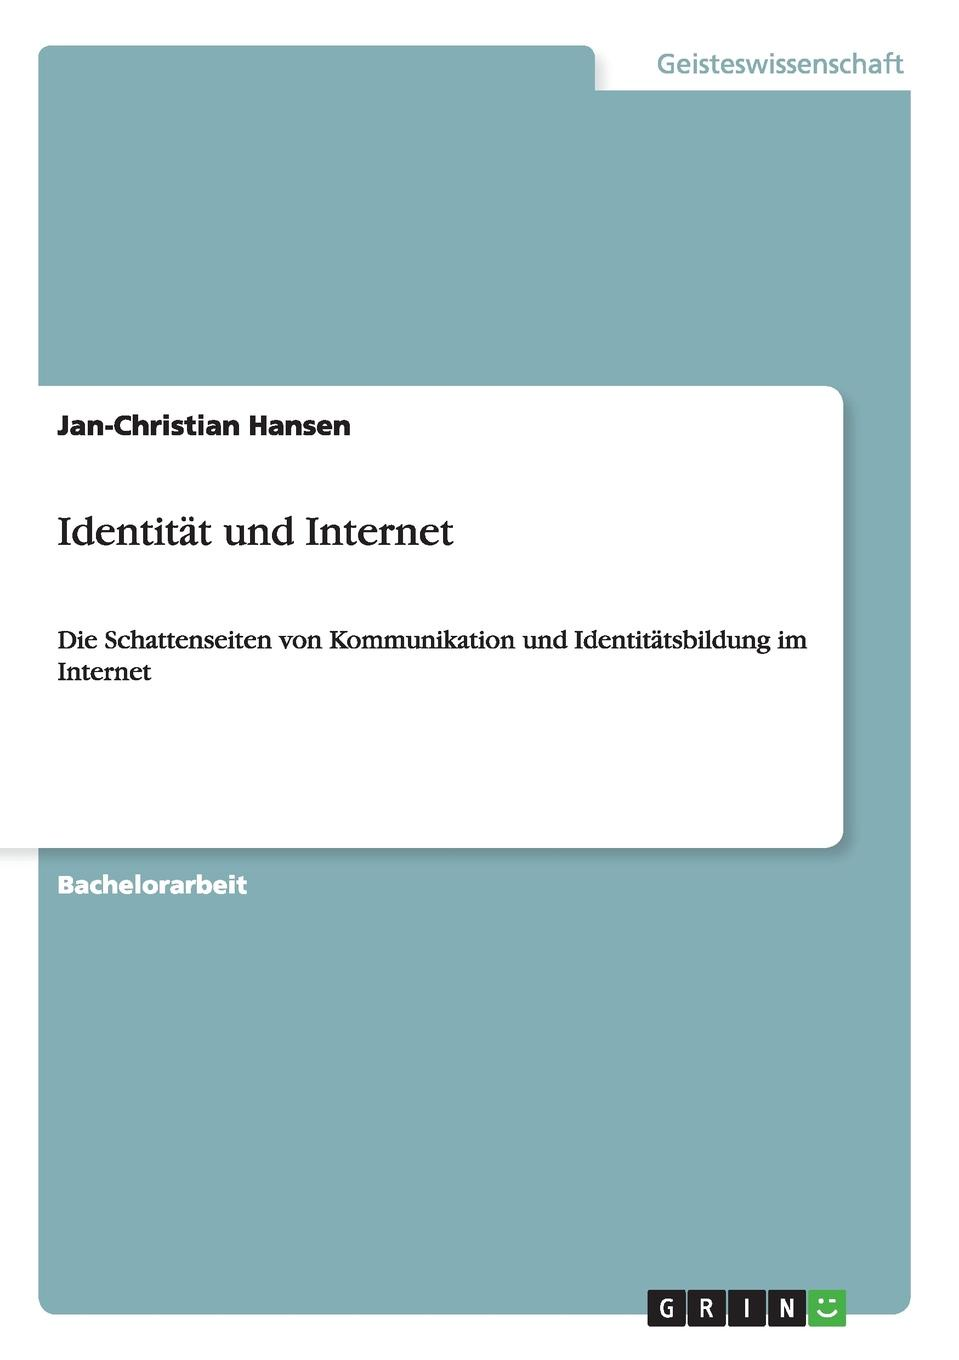 Jan-Christian Hansen Identitat und Internet иоффе м wir mochten deutsch sprechen